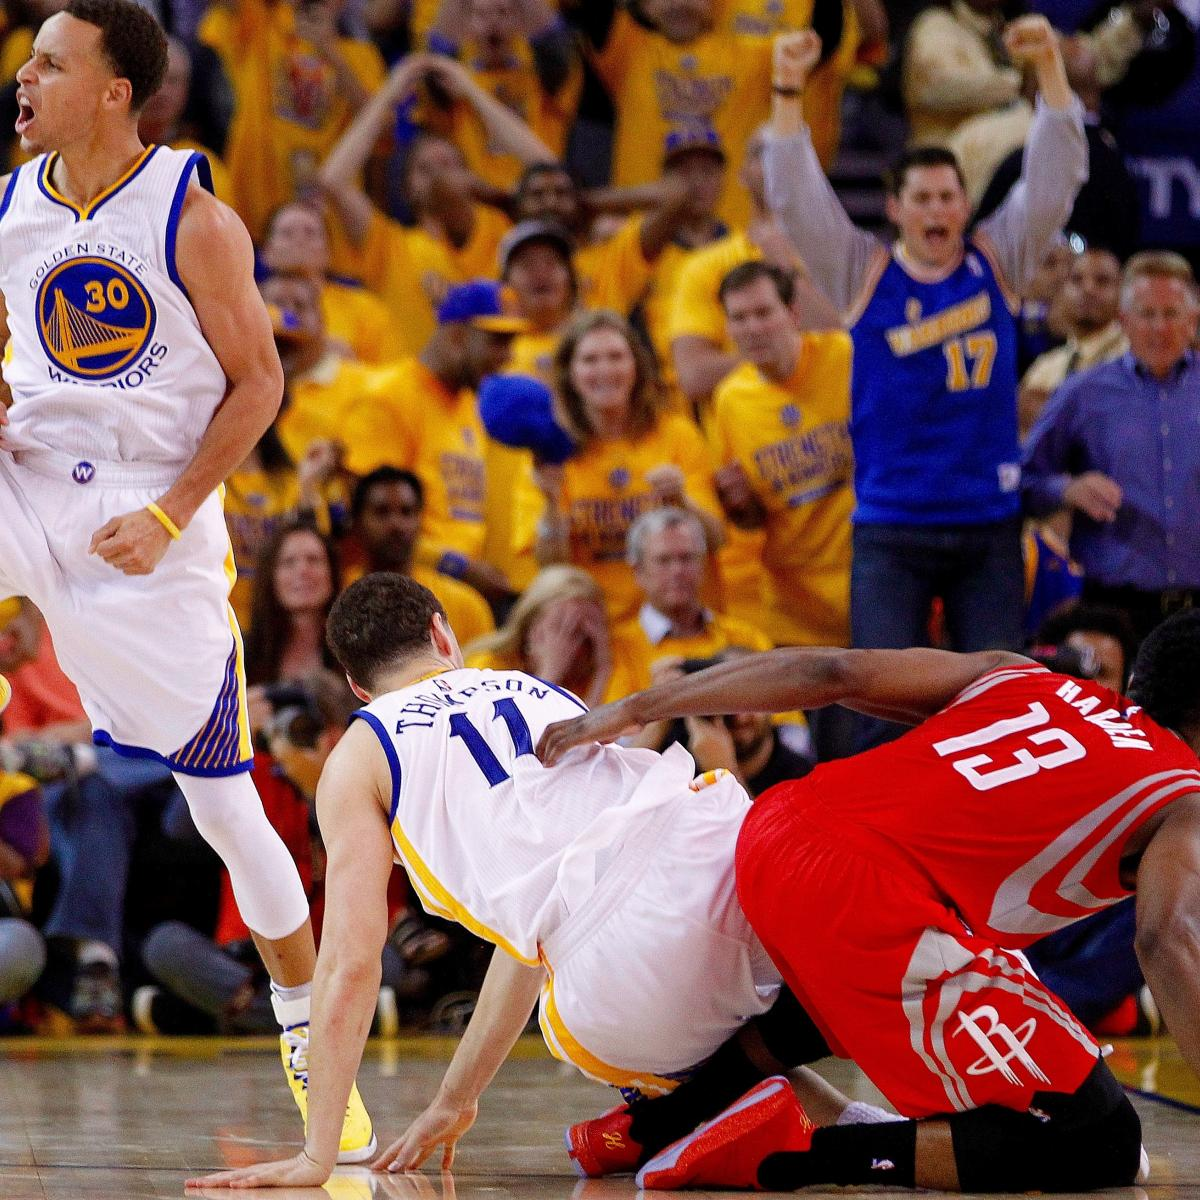 Rockets Vs Warriors Score: Rockets Vs. Warriors: Game 2 Score And Twitter Reaction